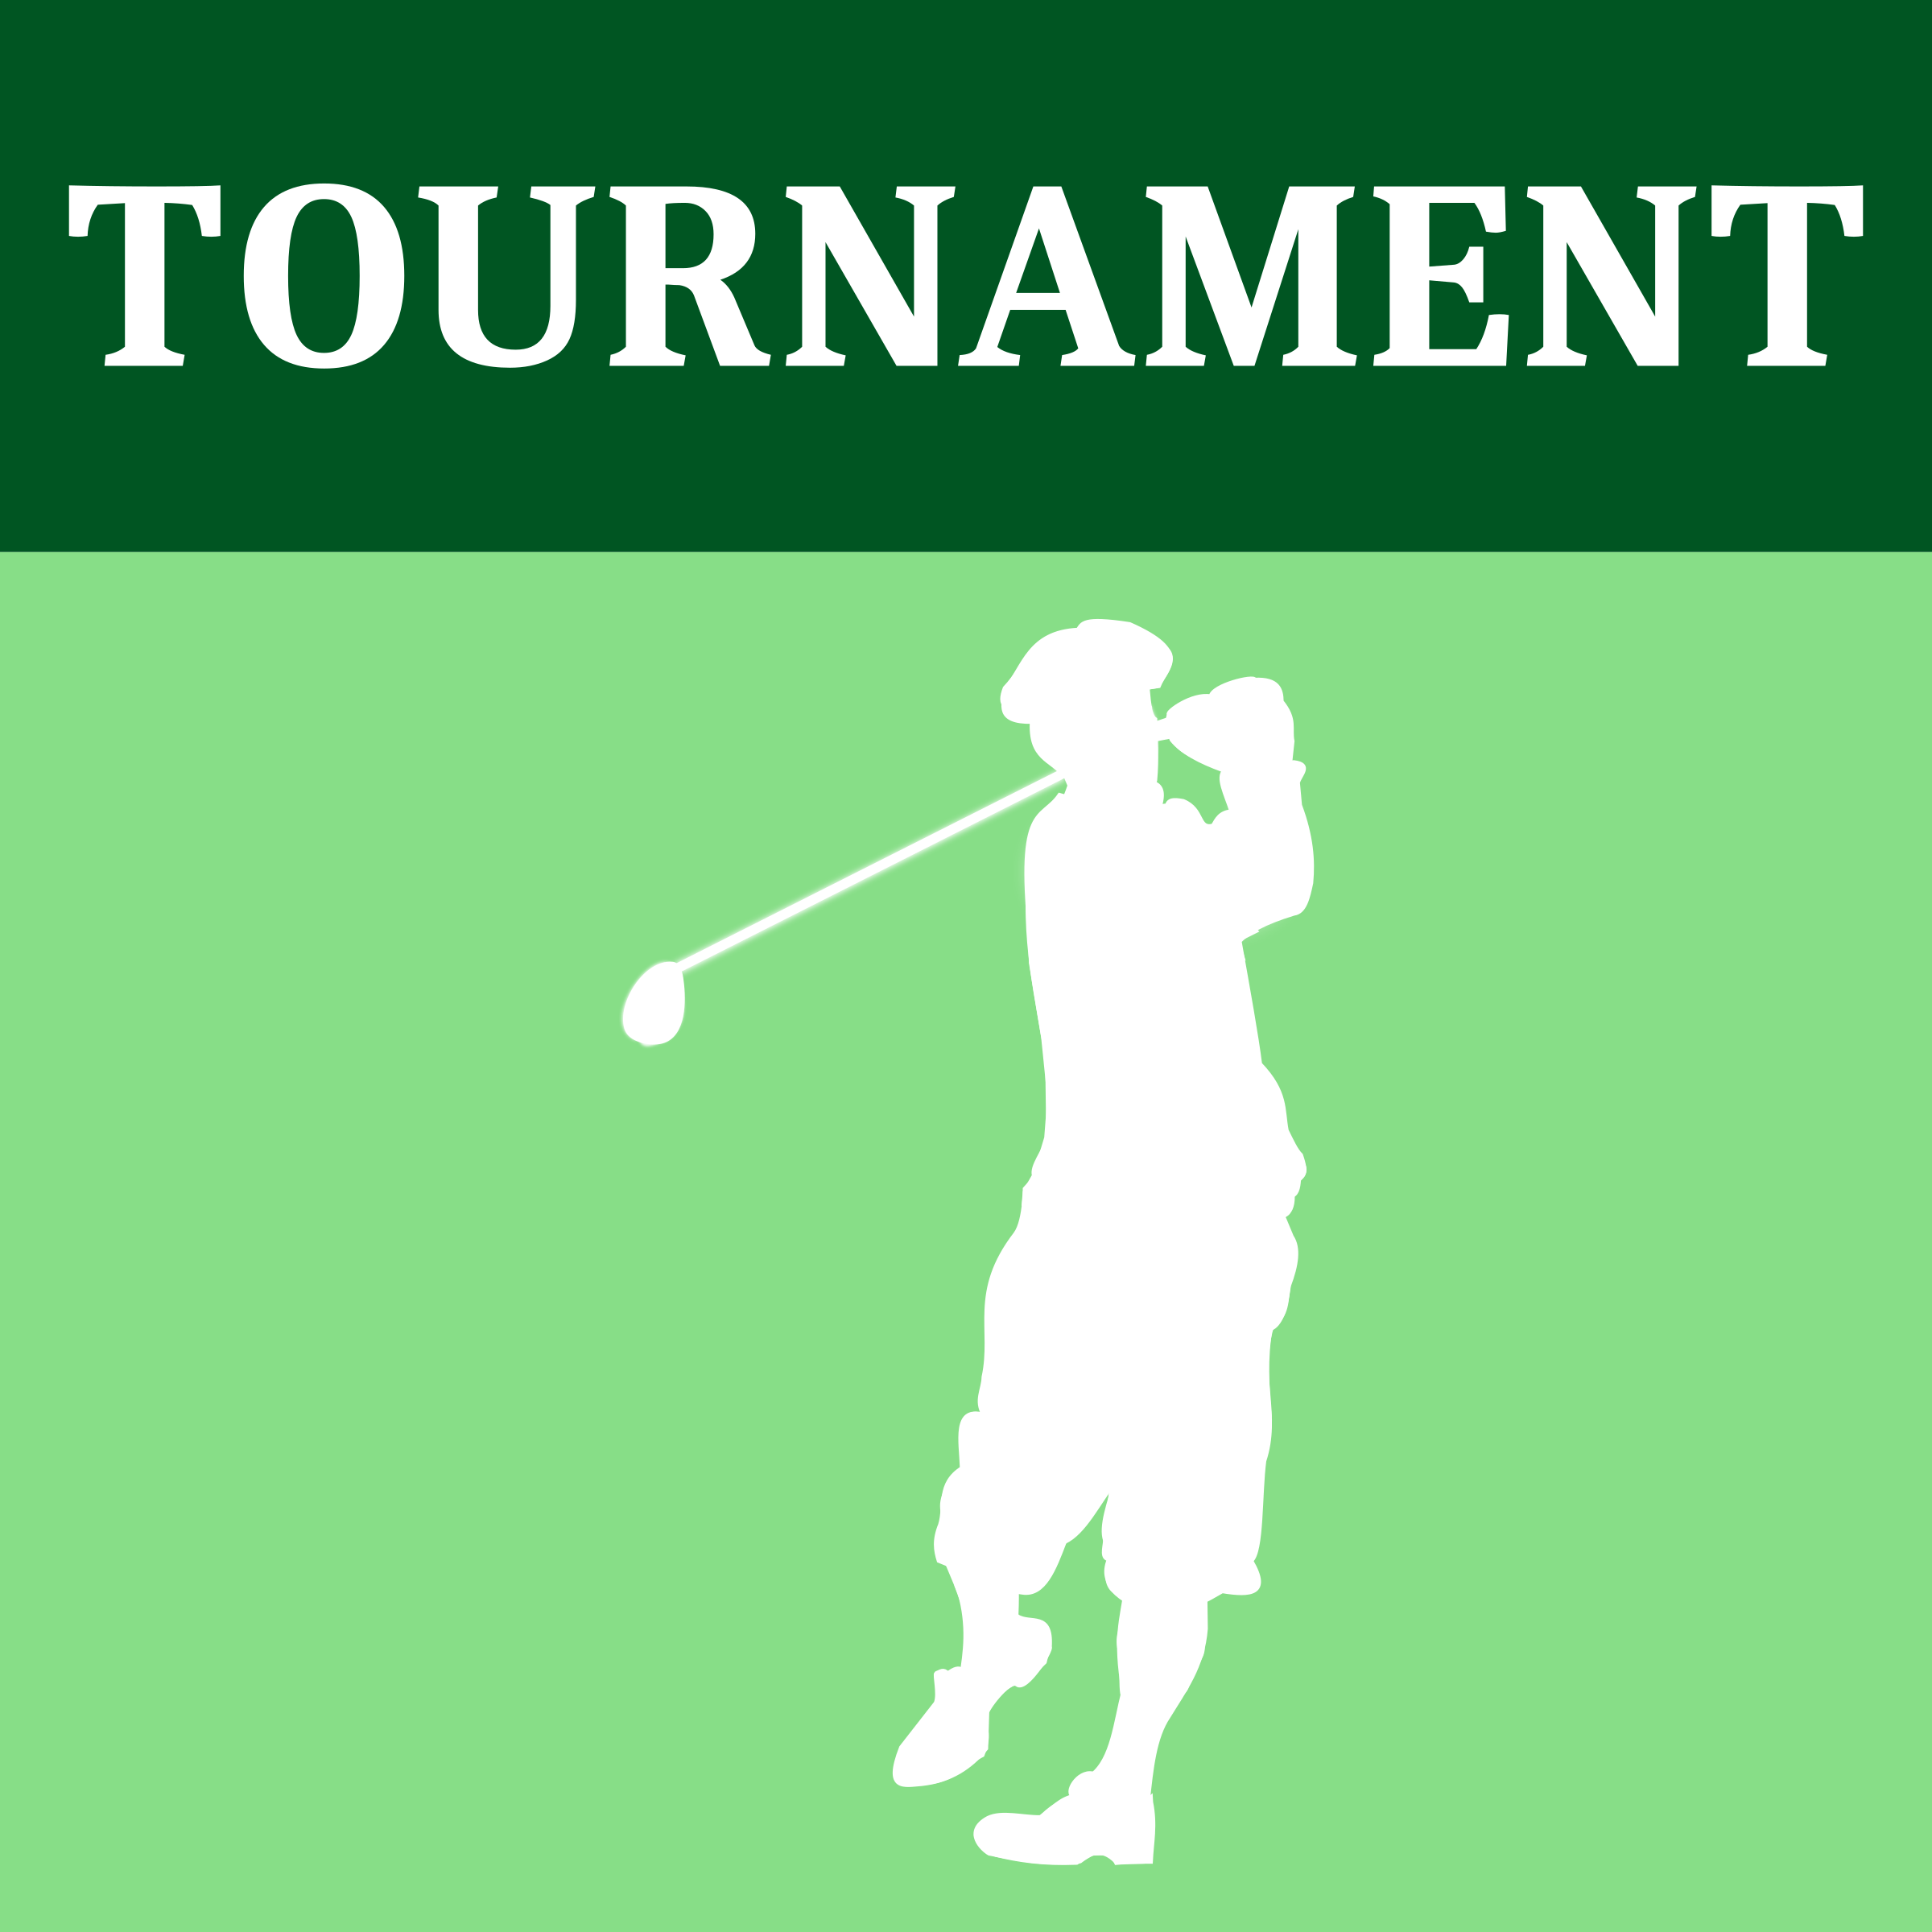 Golf Tournament Icon by Dustwin